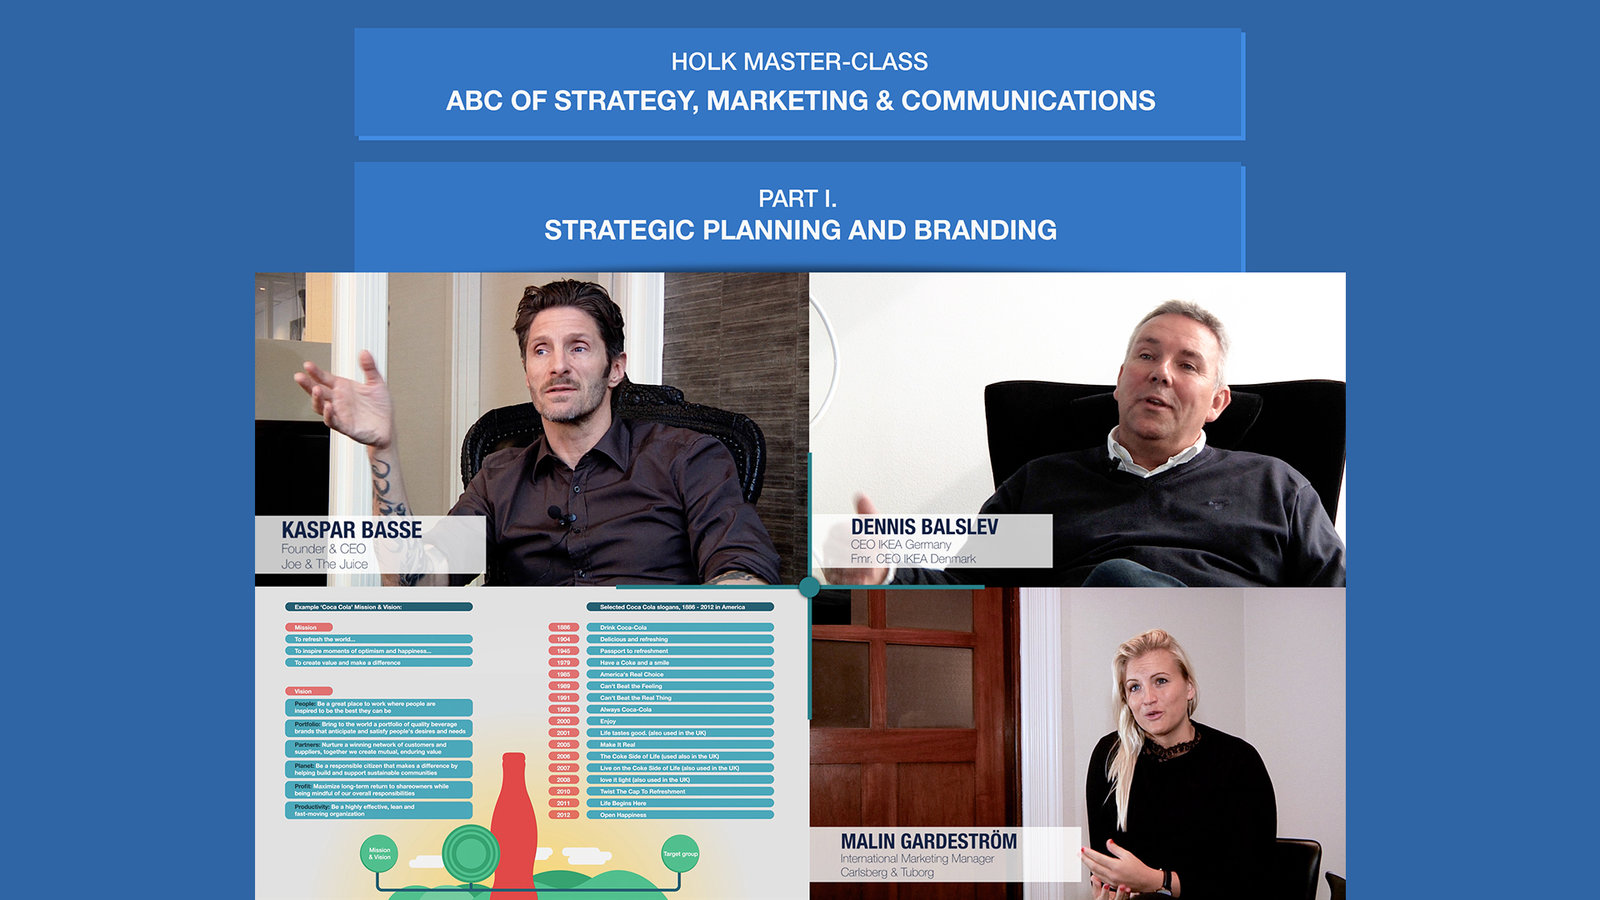 Holk Master-Class - ABC of Strategy, Marketing and Communications